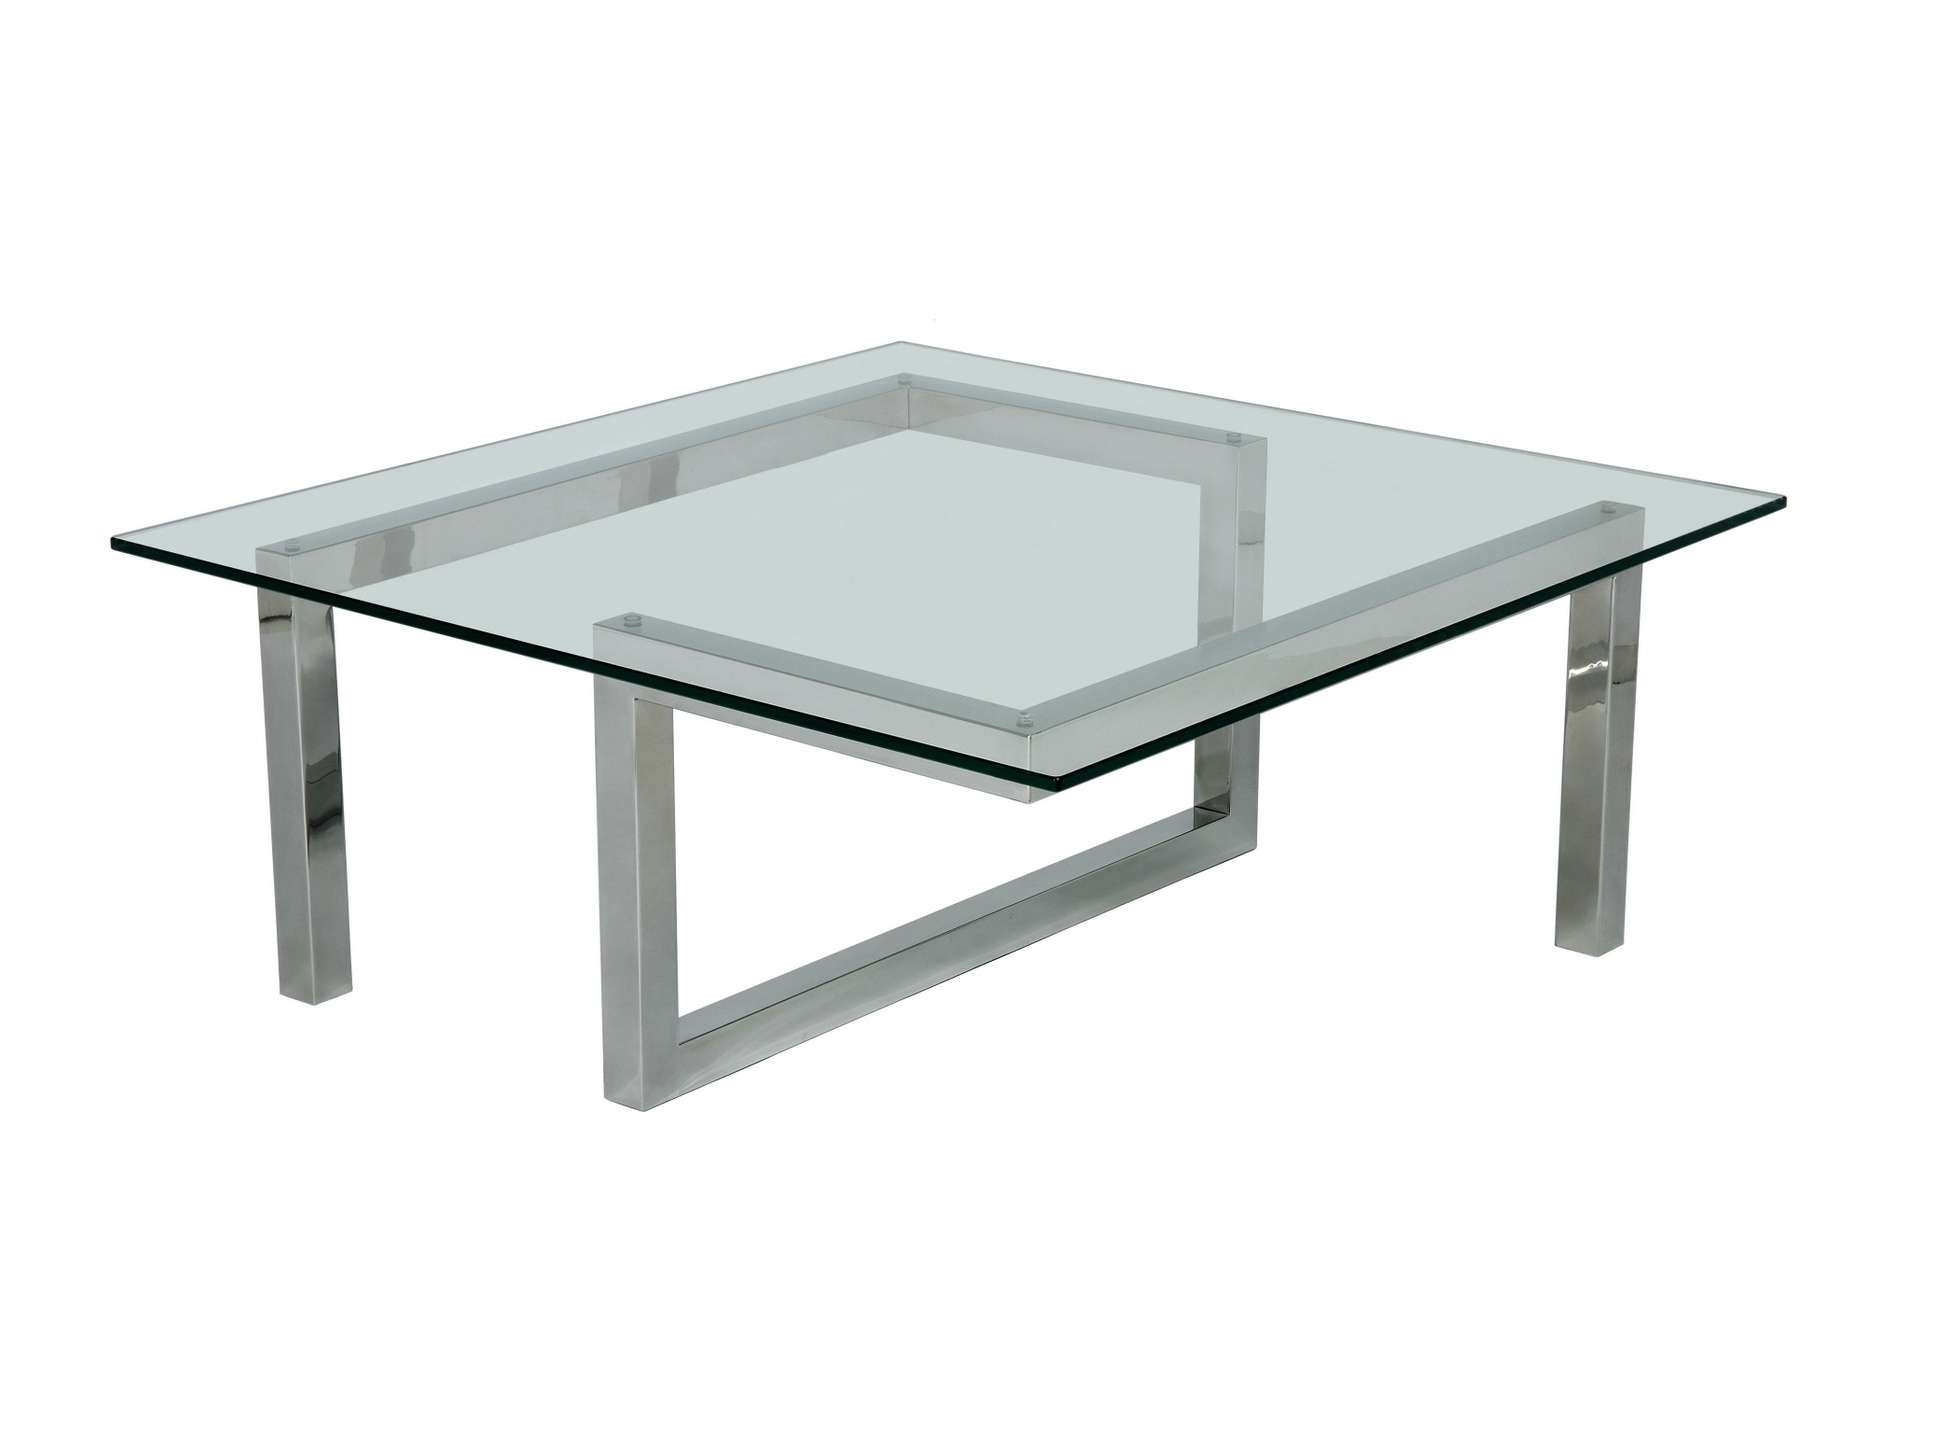 Trendy Steel And Glass Coffee Tables Within Decorations : Modern Glass Top Coffee Tables With Metal Base (View 10 of 20)